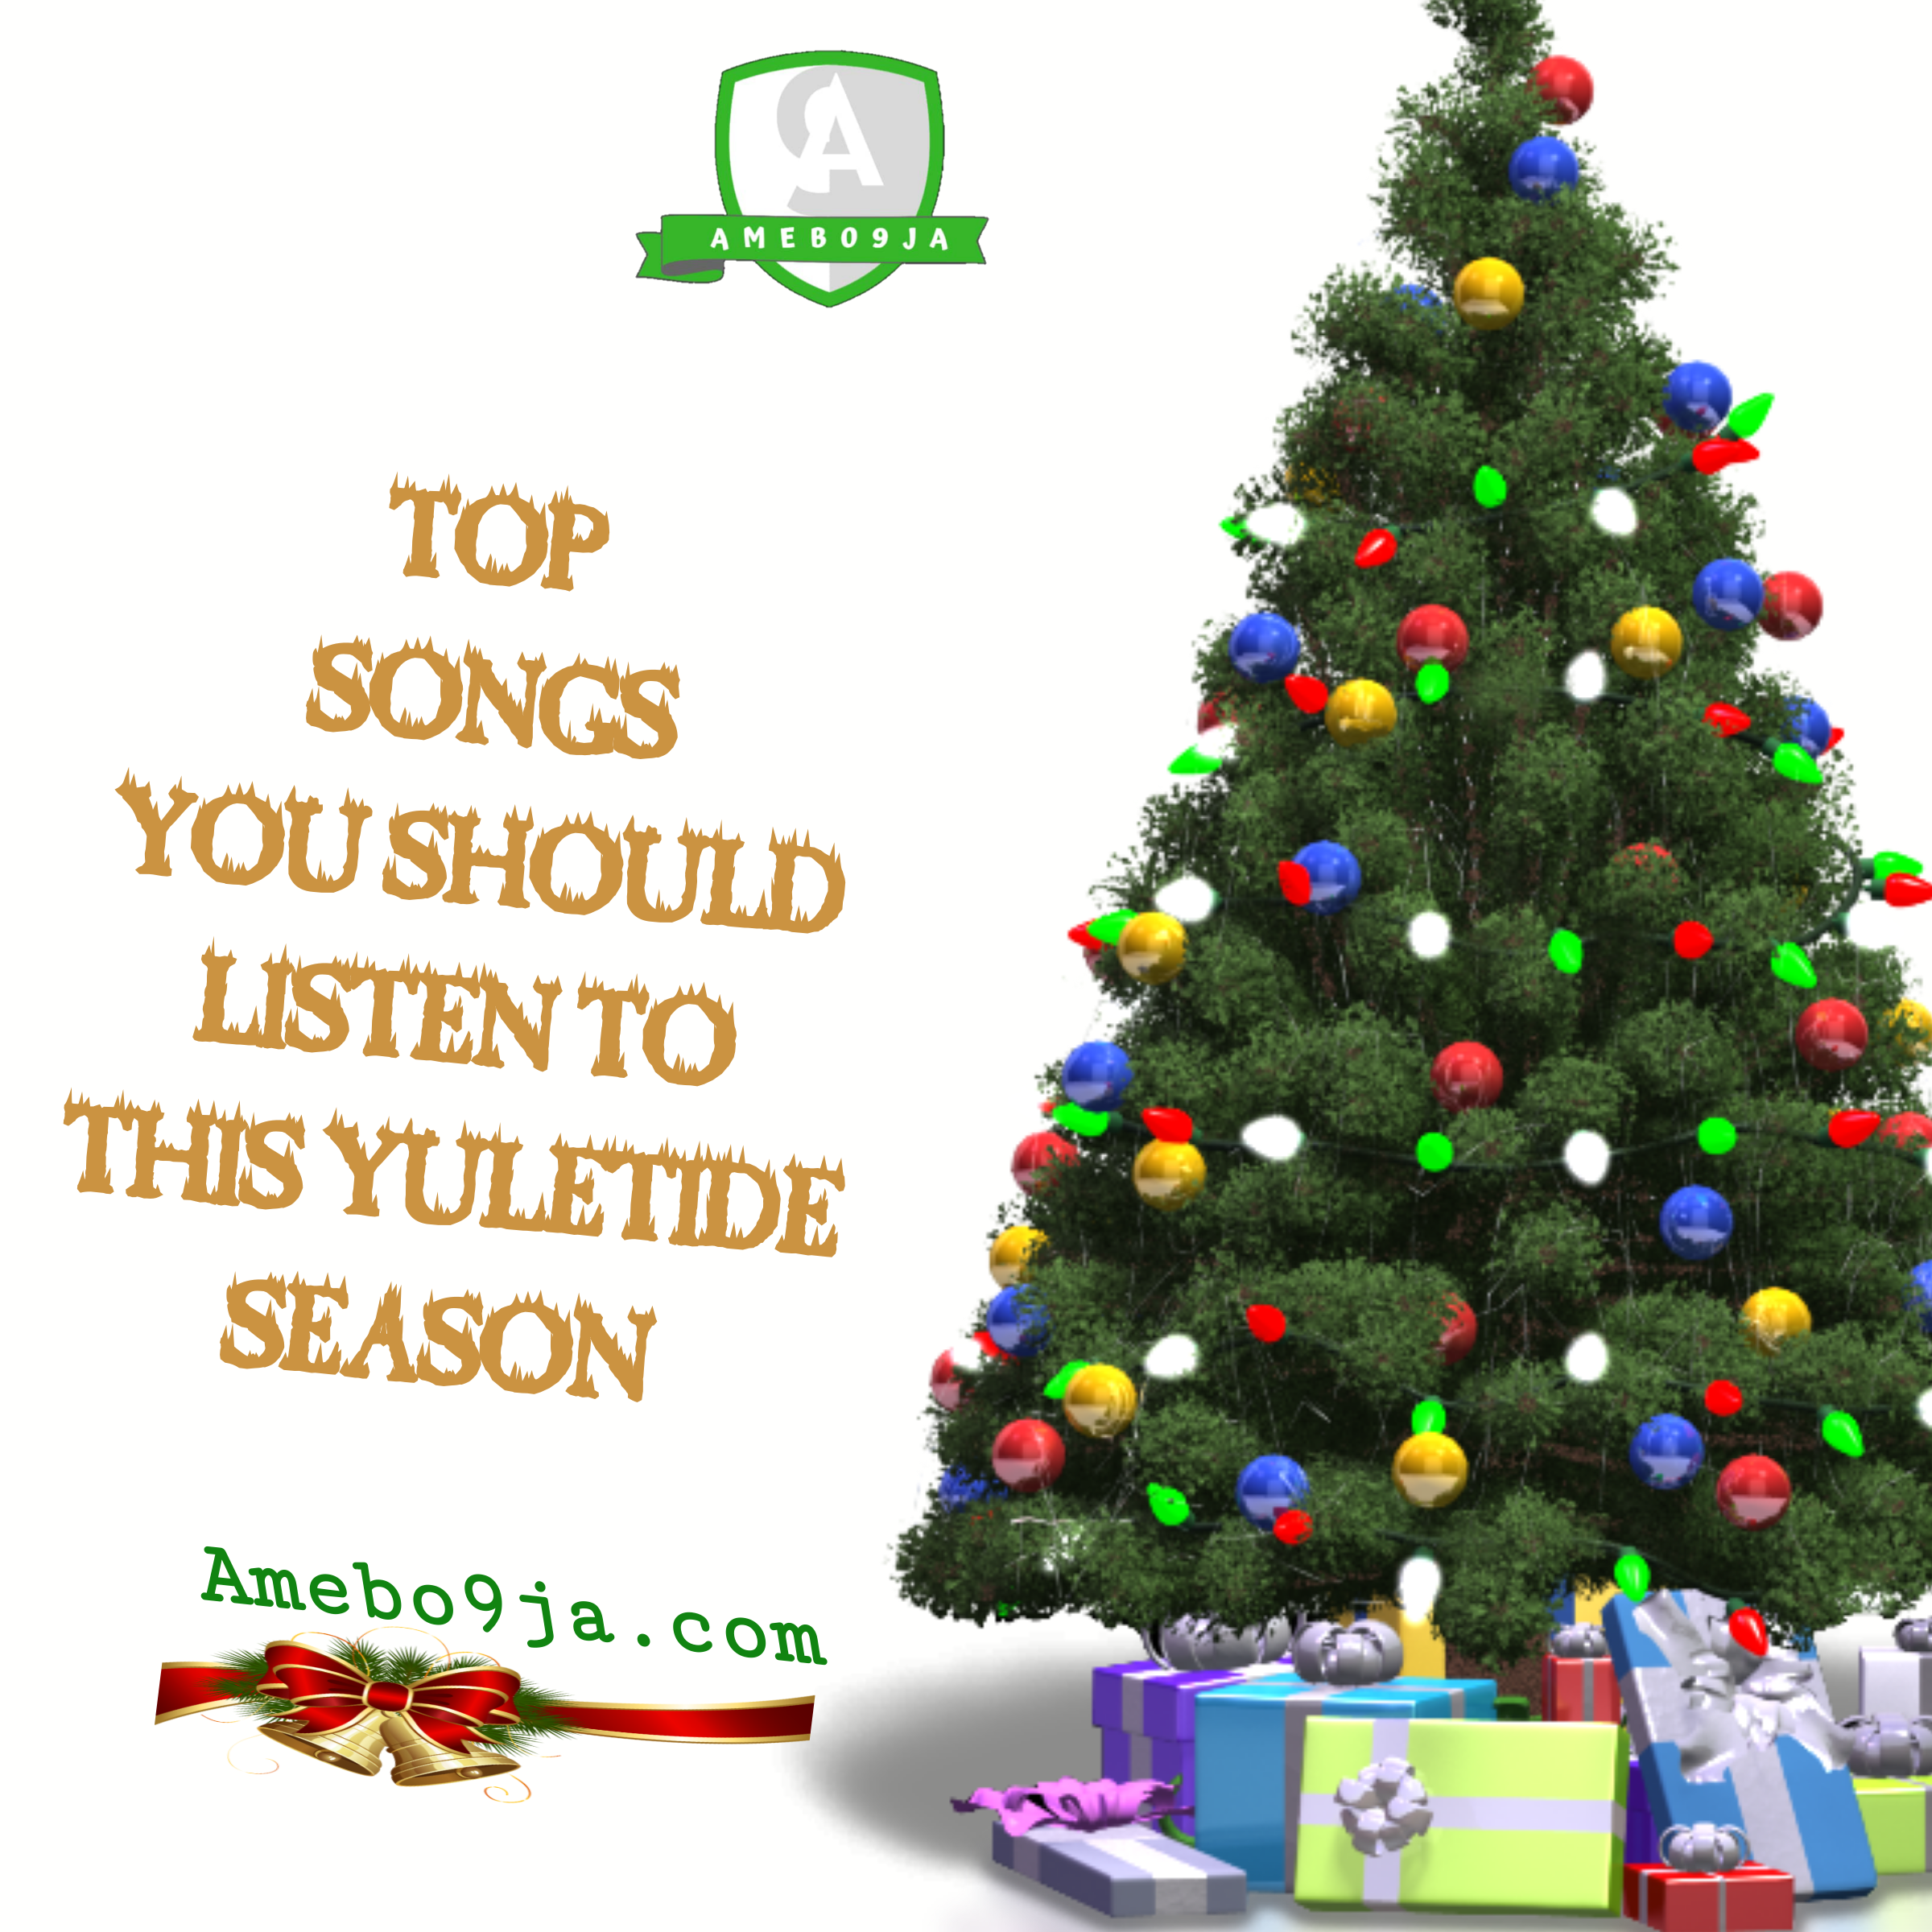 Top Songs You Should Listen To This Yuletide Season Mp3 Audio Download